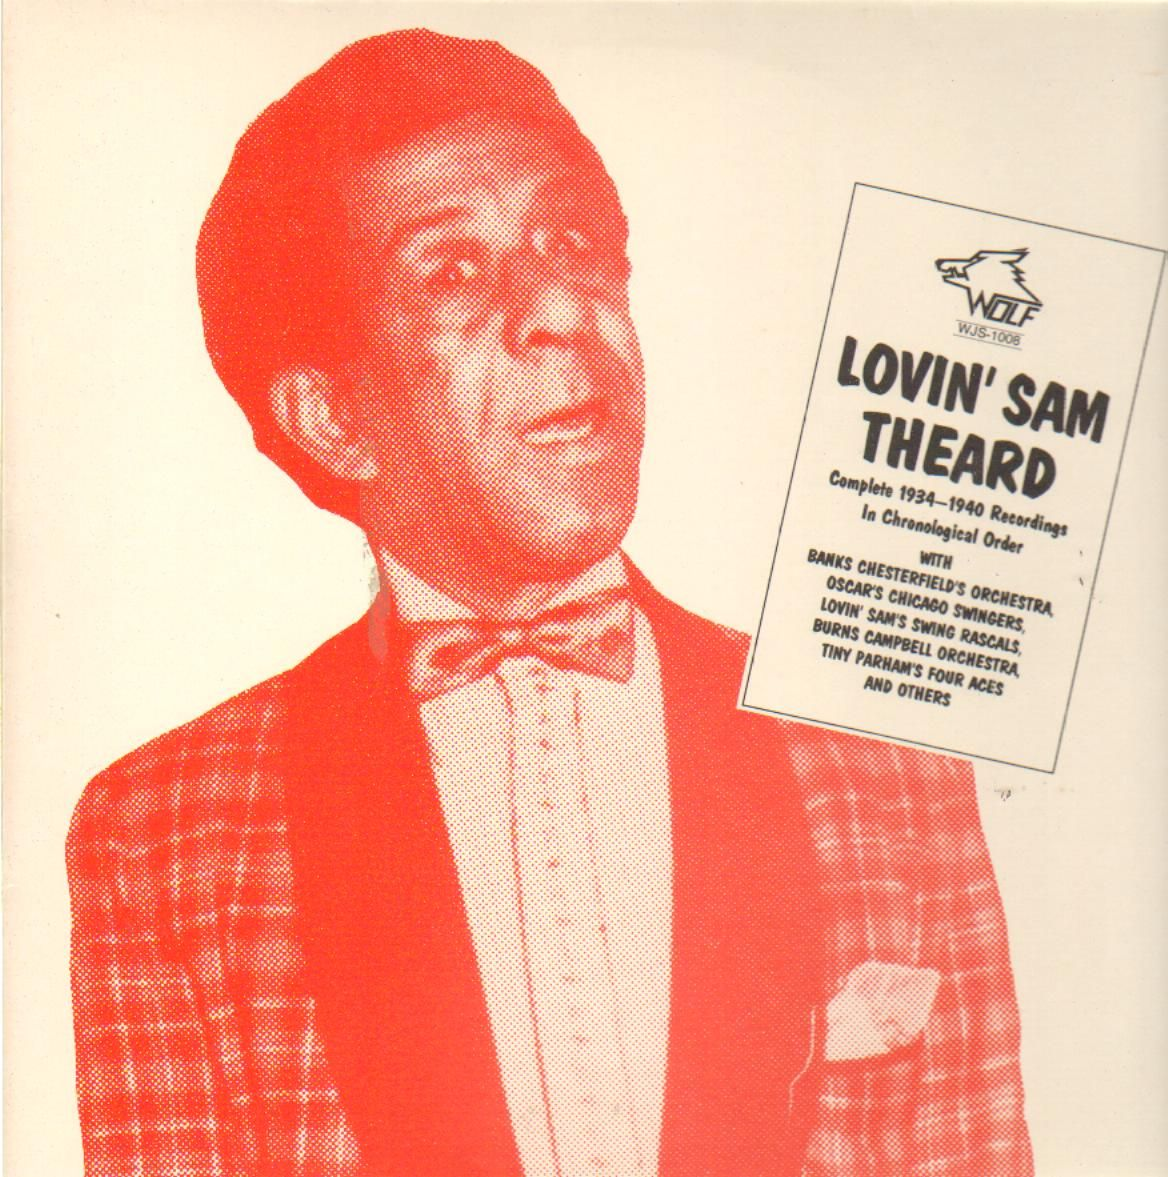 lovin_sam_theard-complete_1934-1940_recordings_in_chronological